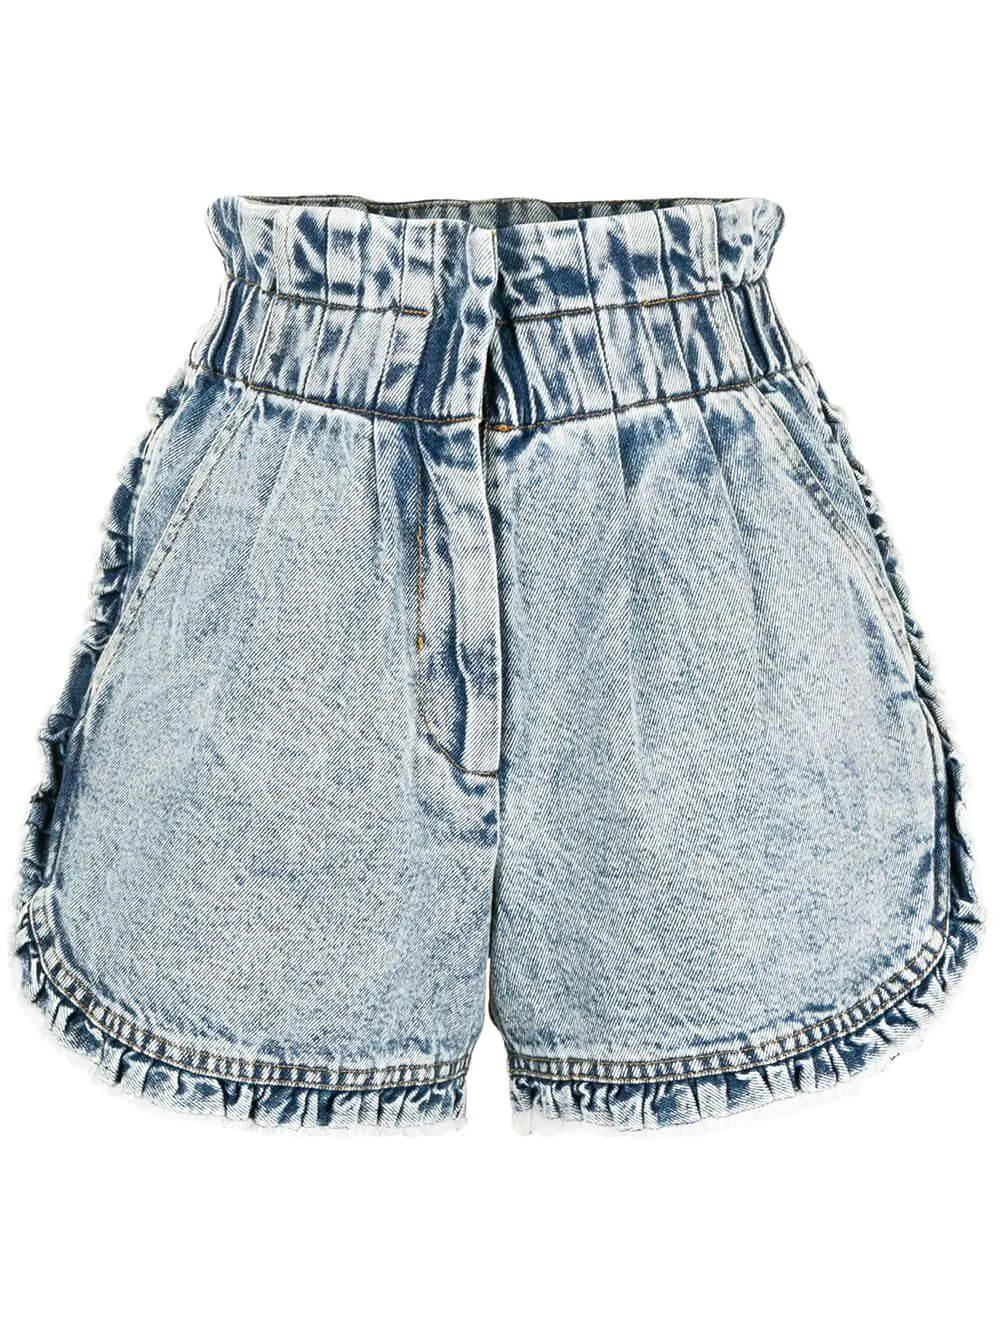 Dax Acid Wash Denim Shorts Item # SS21-16